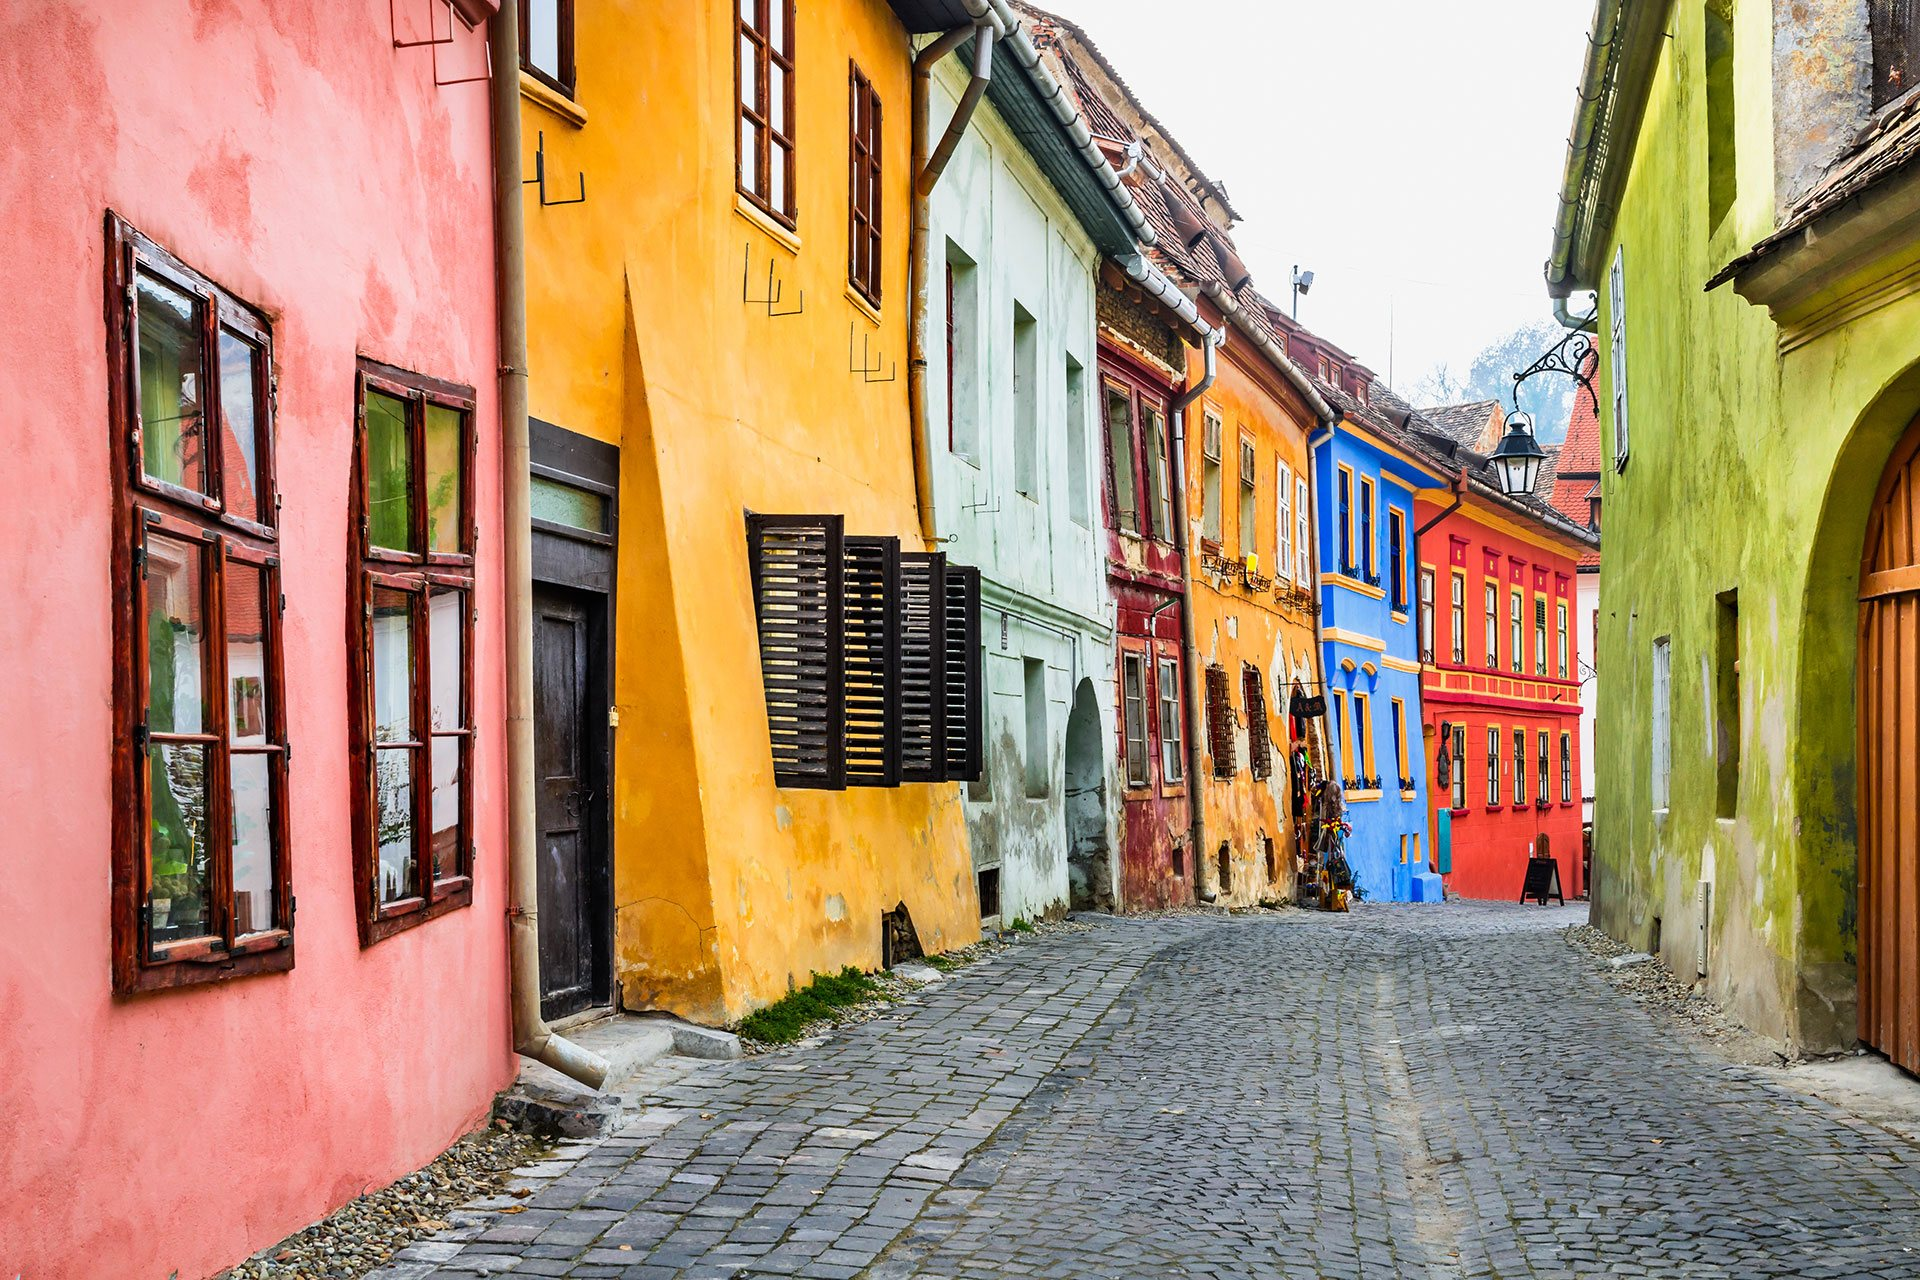 Top Places To Visit In Transylvania RomaniaTourStore - 5 things to see and do in transylvania